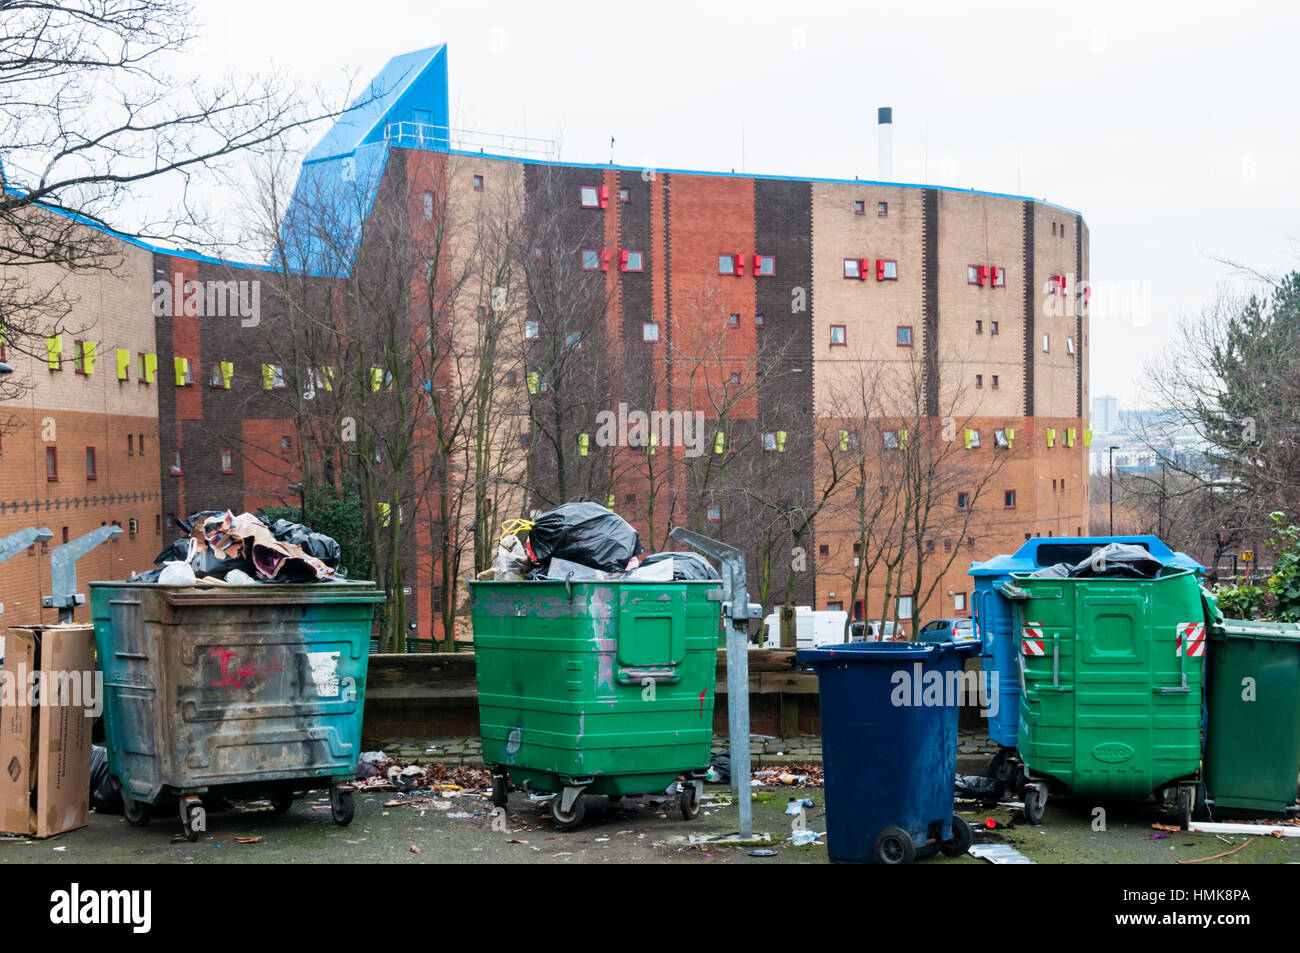 Rubbish bins in front of the Byker Wall, Newcastle. - Stock Image